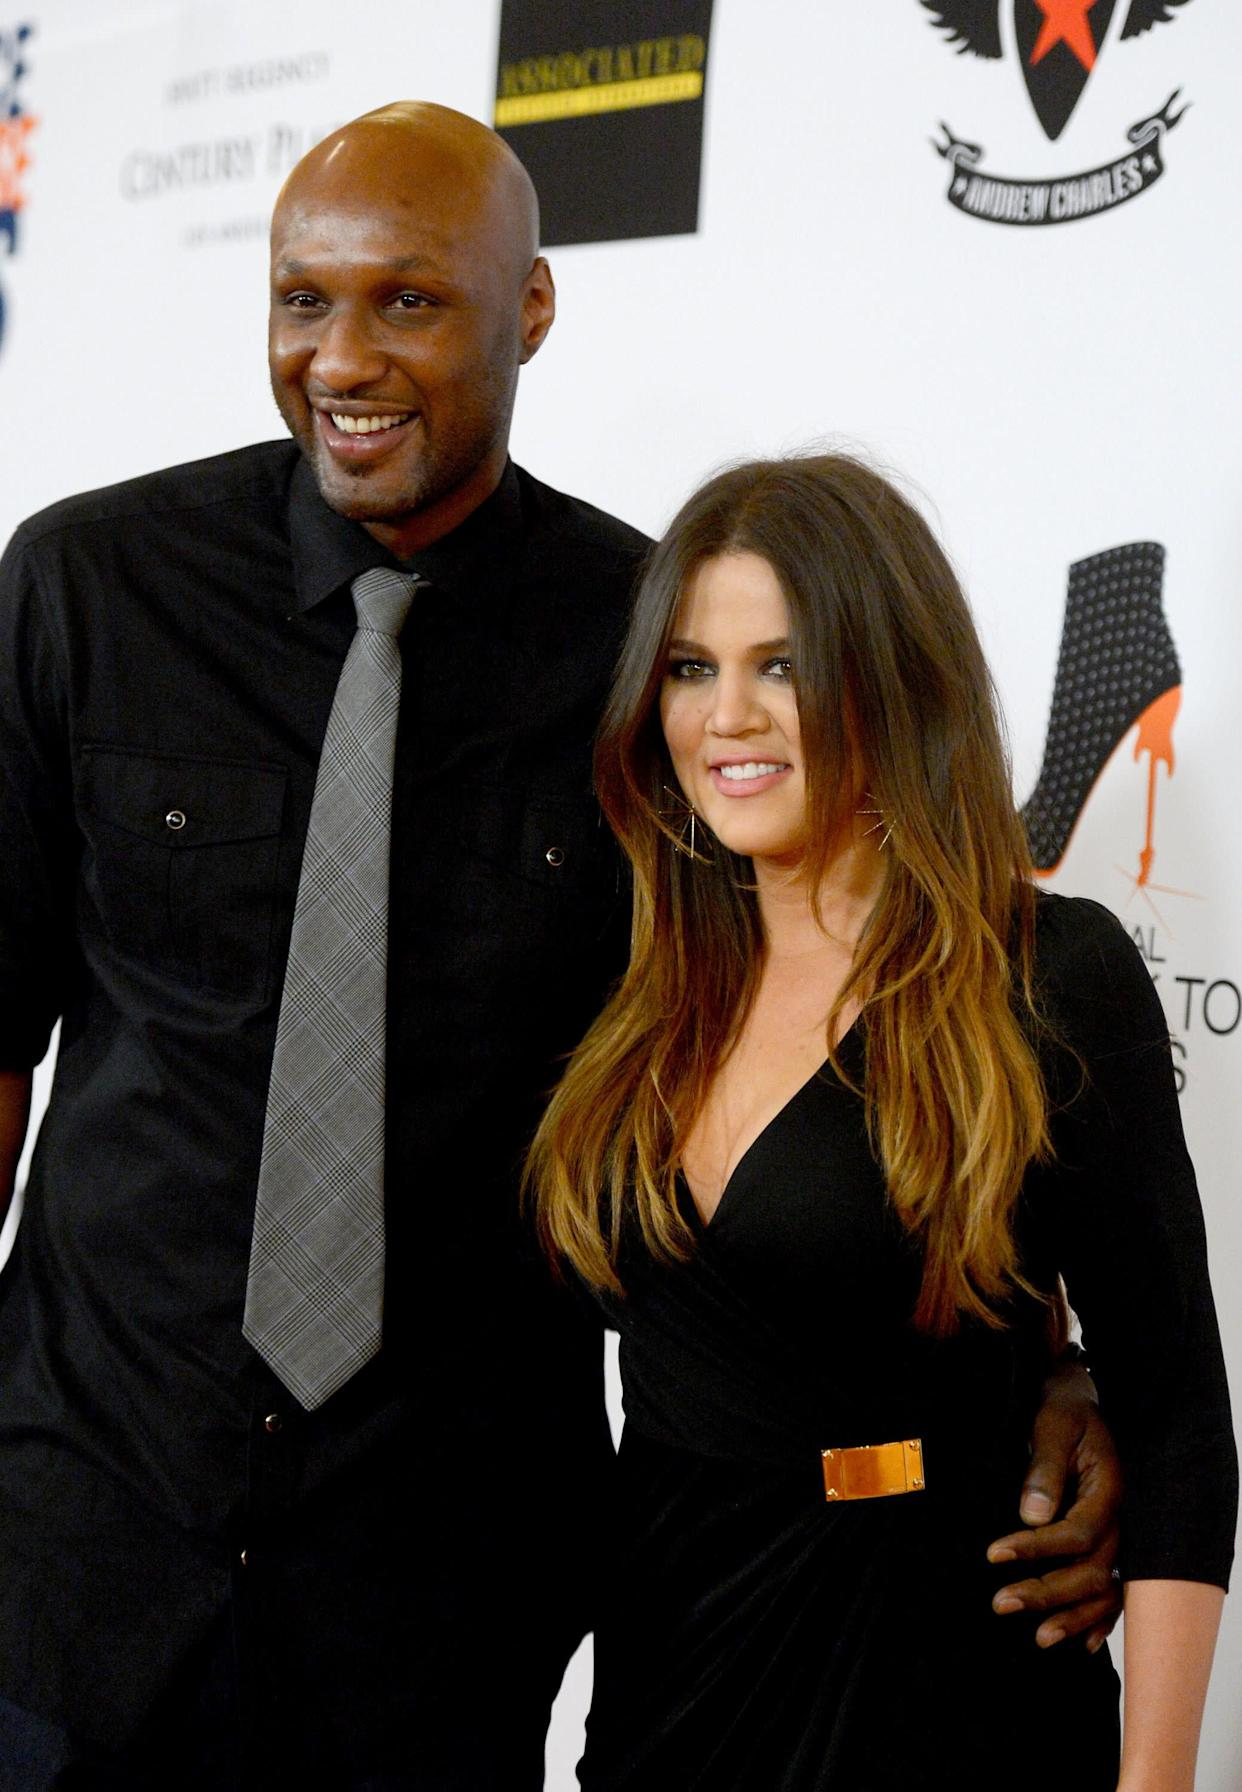 """""""You can tell I'm into the bald,"""" Odom told George Lopez in 2010 <a href=""""http://hollywoodlife.com/2010/03/11/khloe-kardashian-lamar-odom-bald-lopez/"""" rel=""""nofollow noopener"""" target=""""_blank"""" data-ylk=""""slk:while sitting with wife Khloe Kardashian"""" class=""""link rapid-noclick-resp"""">while sitting with wife Khloe Kardashian</a>. """"You got to keep it clean down there. It's disgusting if you let it go crazy."""""""